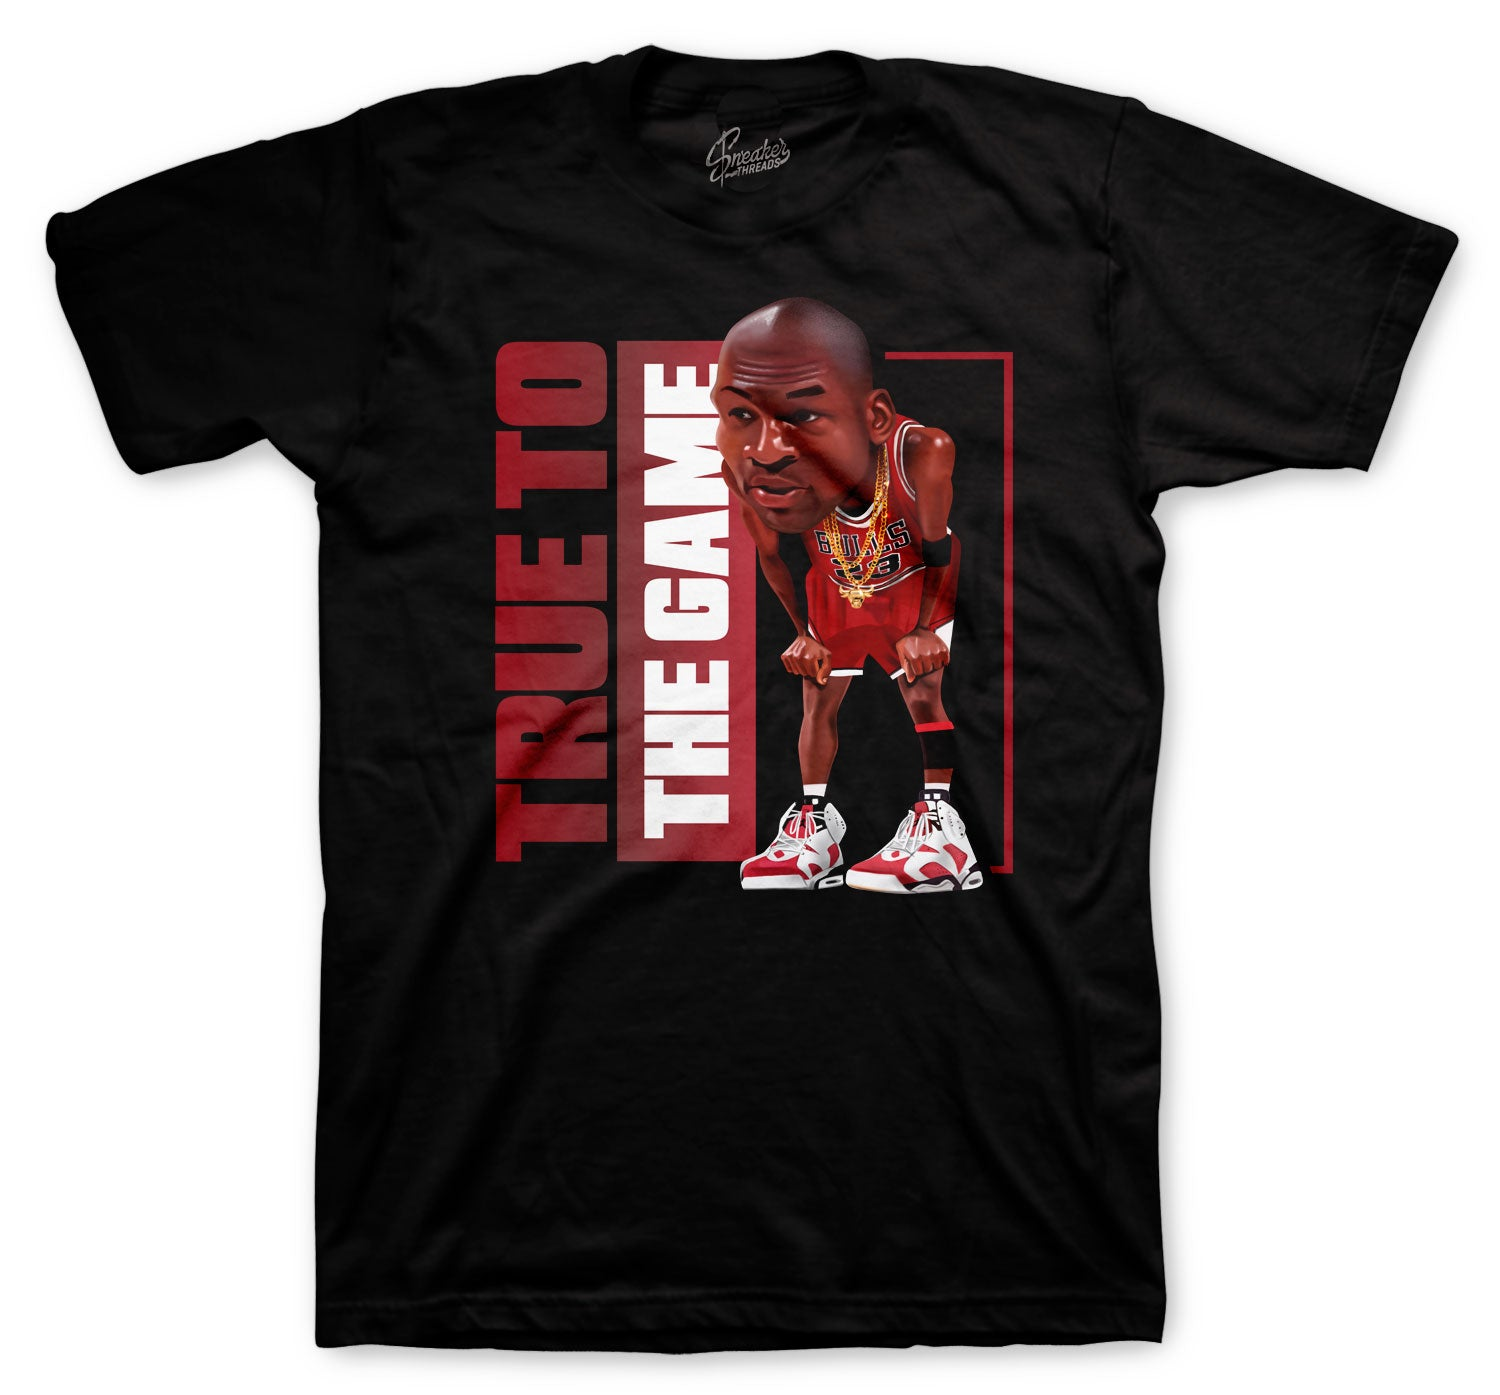 Jordan 6 Carmine Shirt - True Game - Black